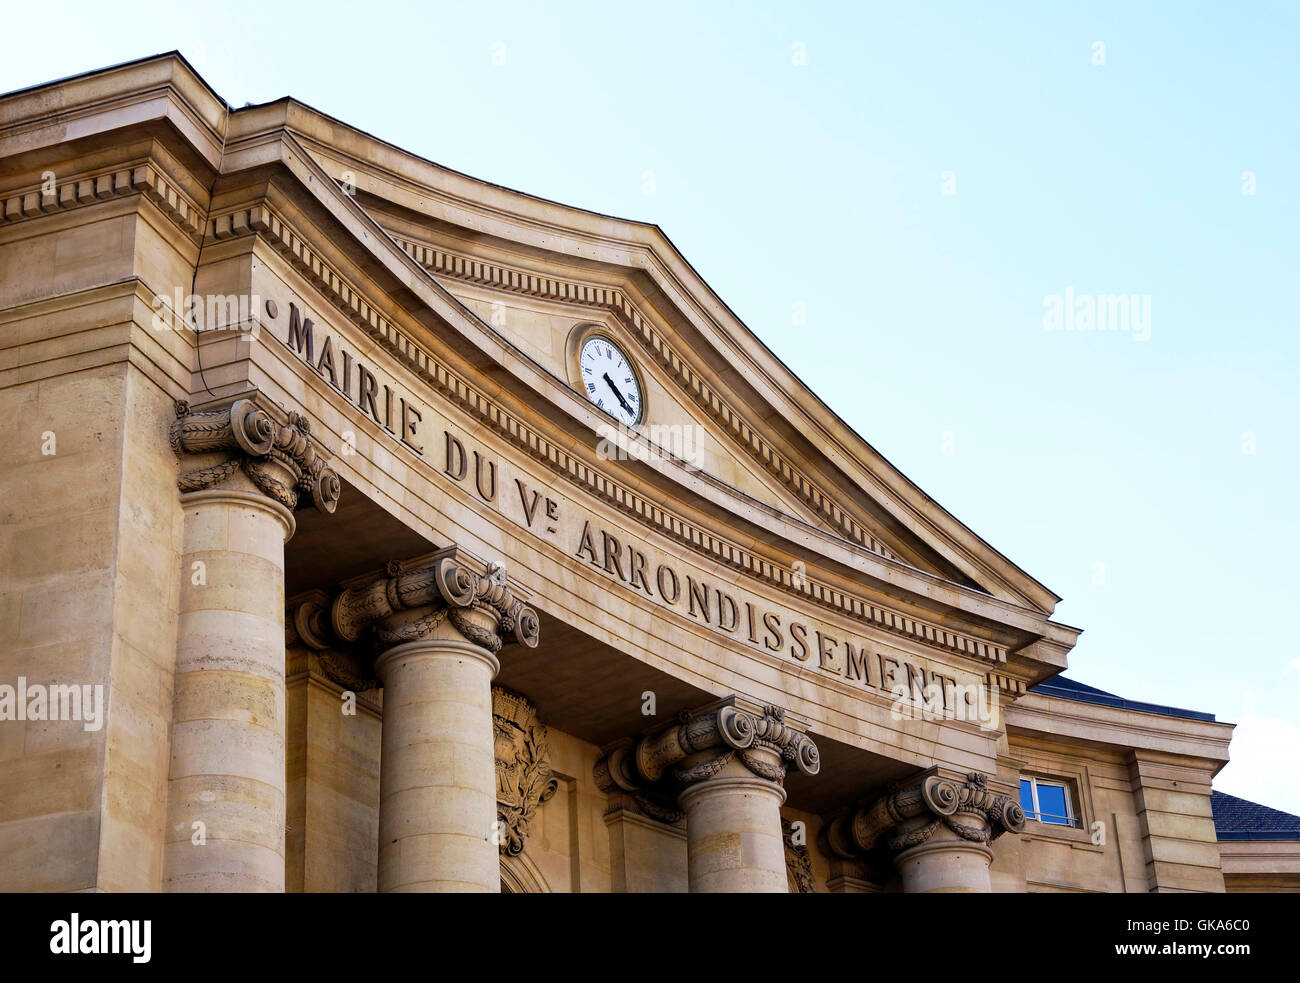 City hall of the 5th arrondissement of Paris, France - Stock Image